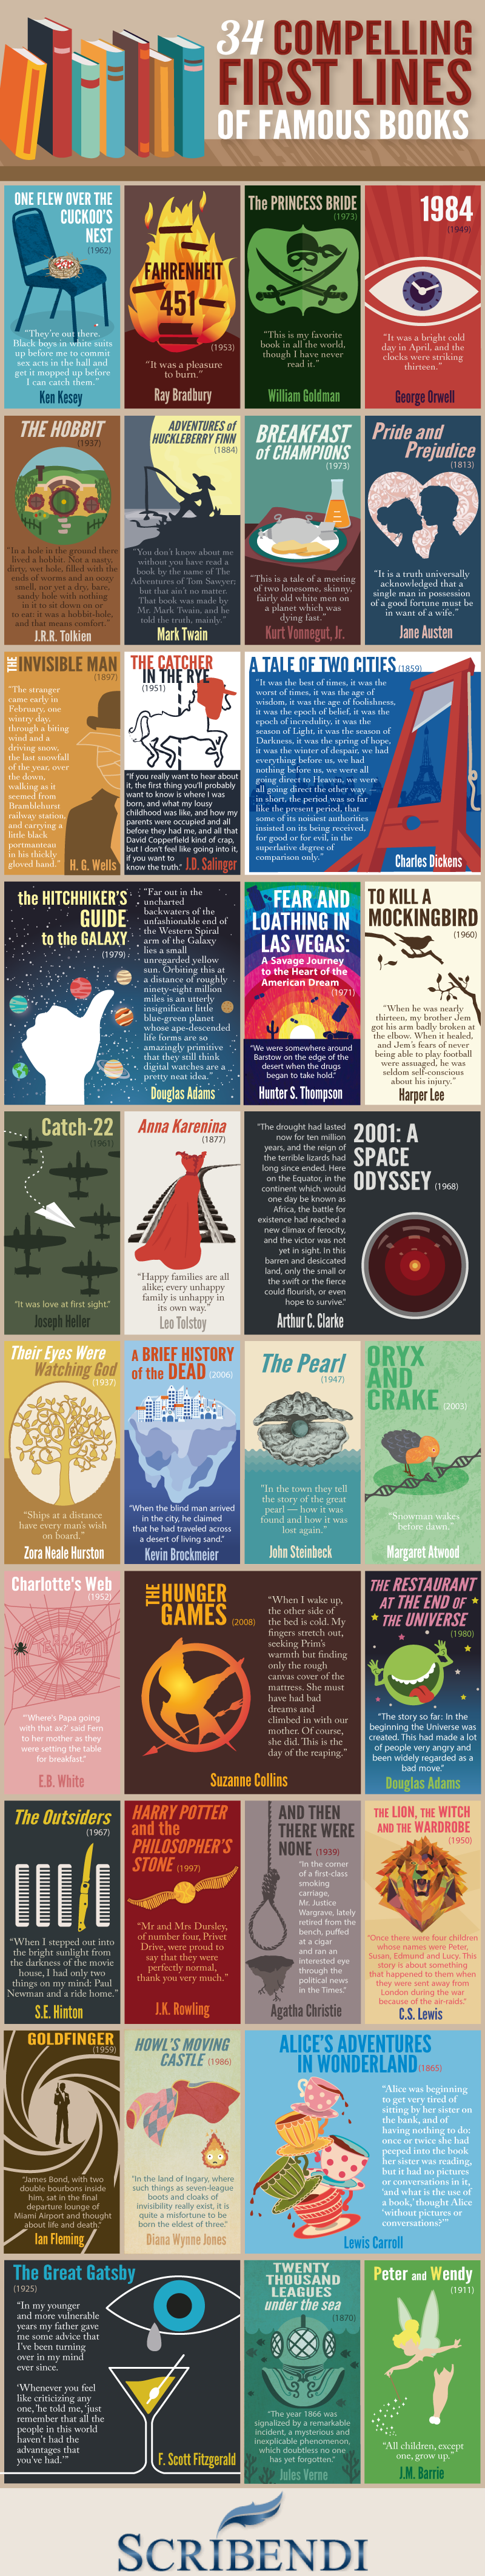 34 Compelling First Lines of Famous Books